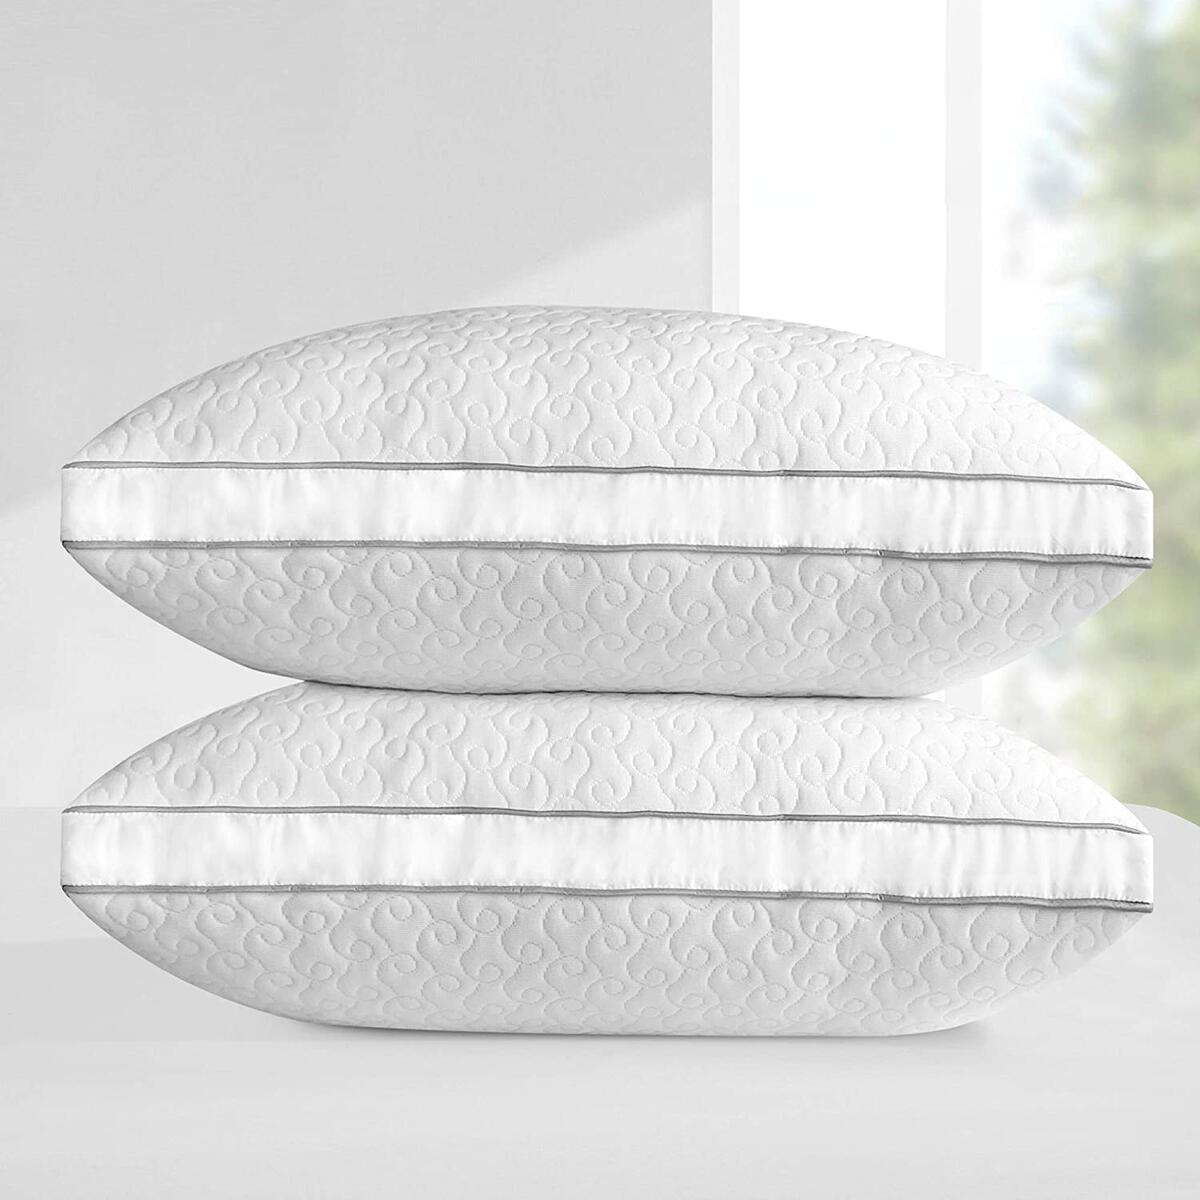 Leeden Bed Pillows for Sleeping 2 Pack Standard Size for Side and Back Sleepers, Hotel Luxury Pillows, Soft Standard Pillow 20'' x 26''